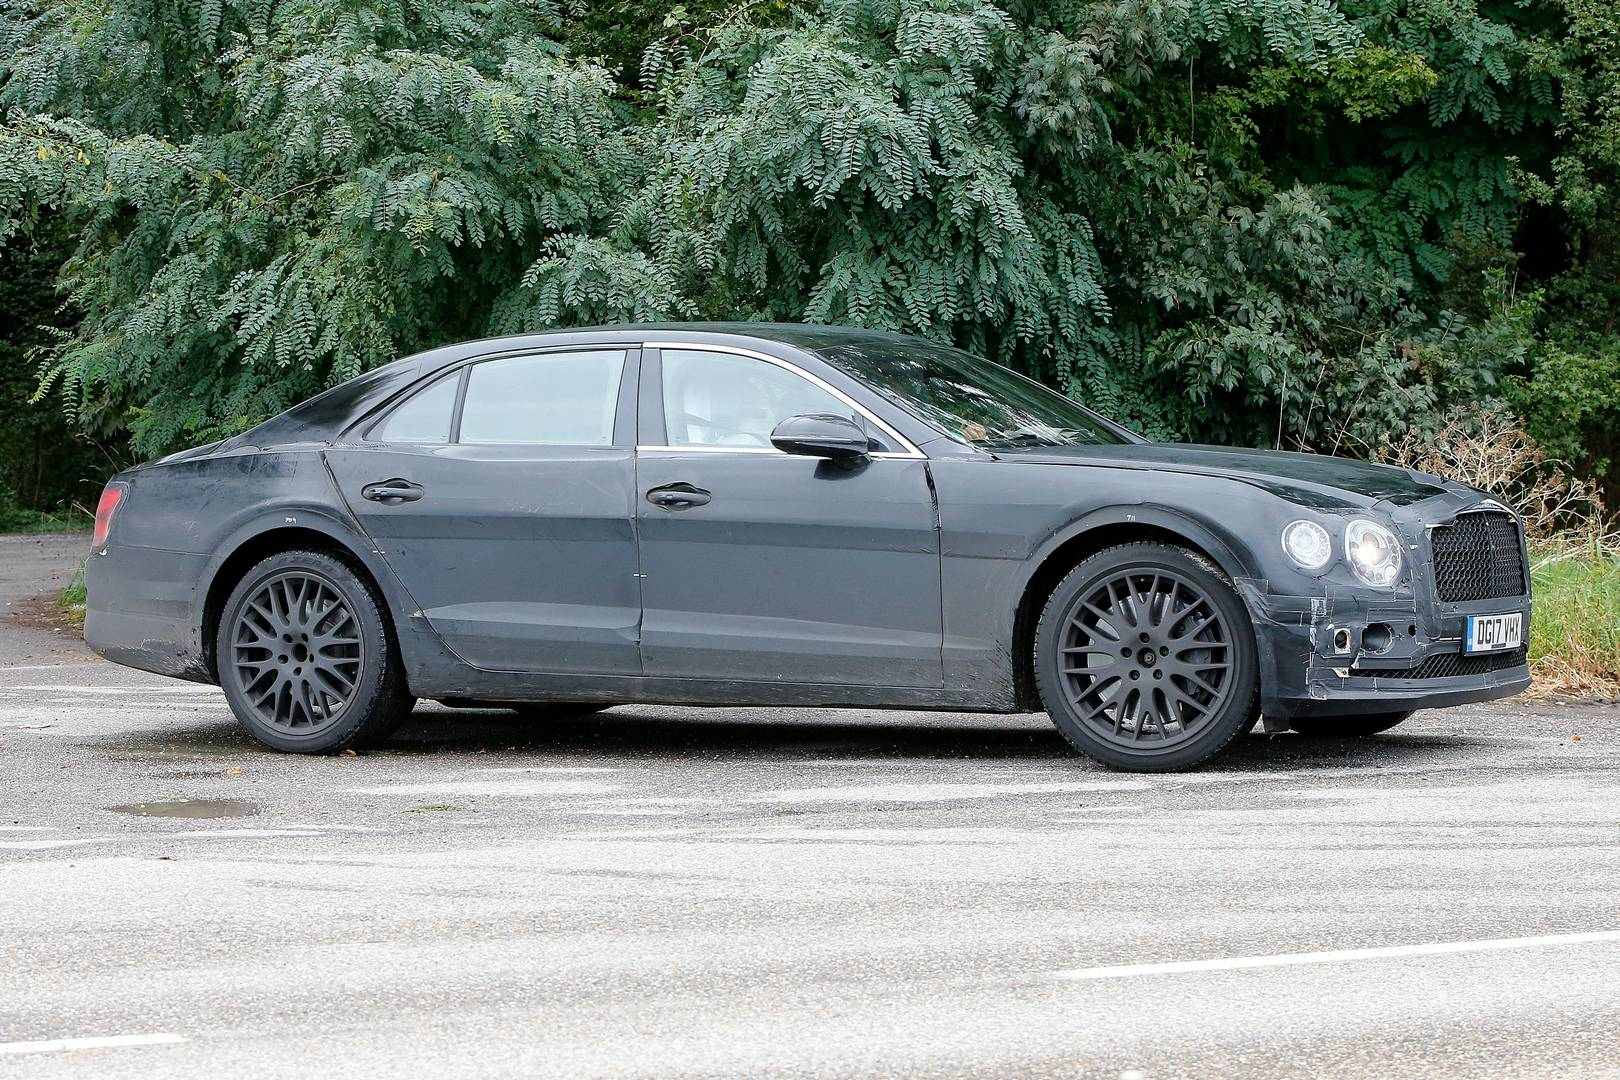 Next Gen Bentley Flying Spur Spy Shots